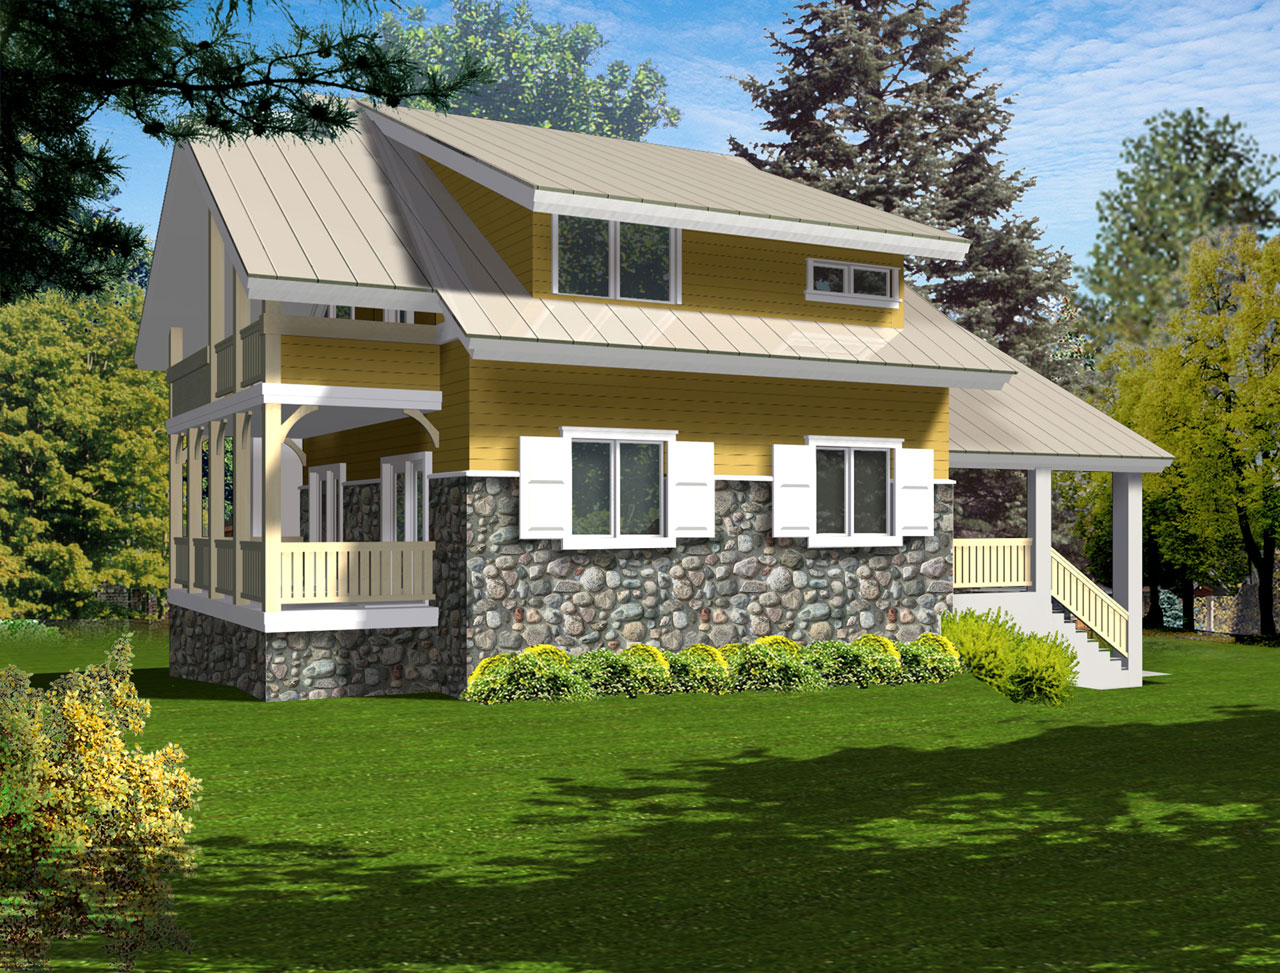 Bungalow Style House Plans Plan: 1-163